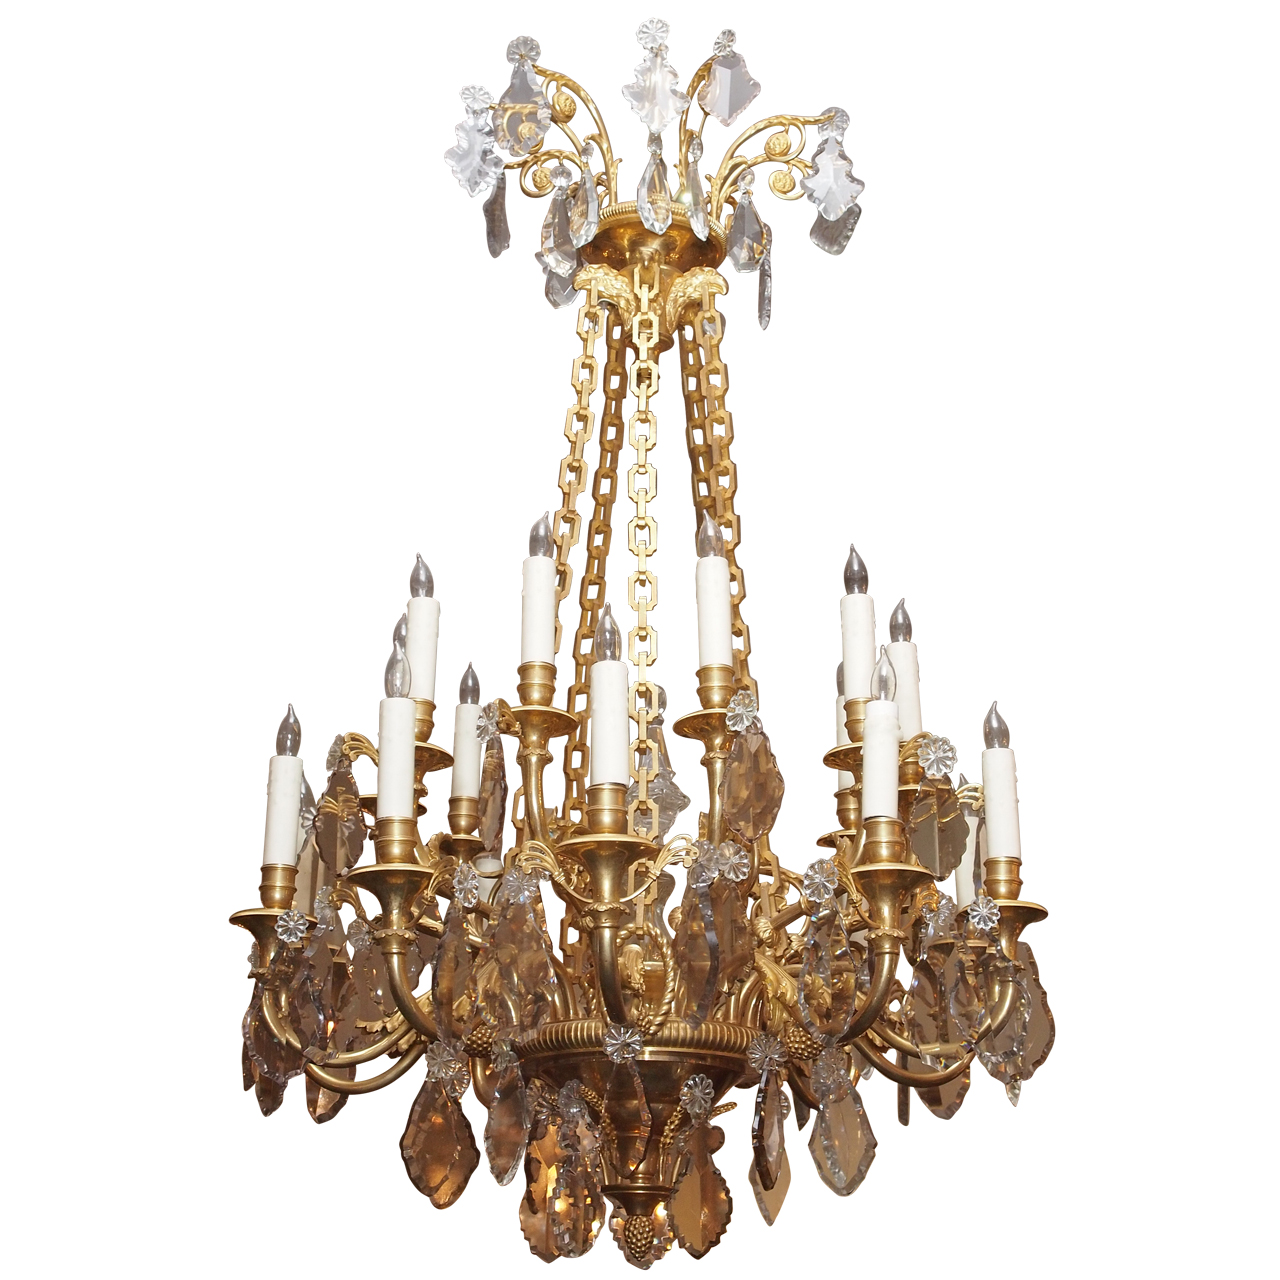 Antique French Ormolu and Baccarat Chandelier circa 1850-1870 - Antique French Ormolu And Baccarat Chandelier Circa 1850-1870